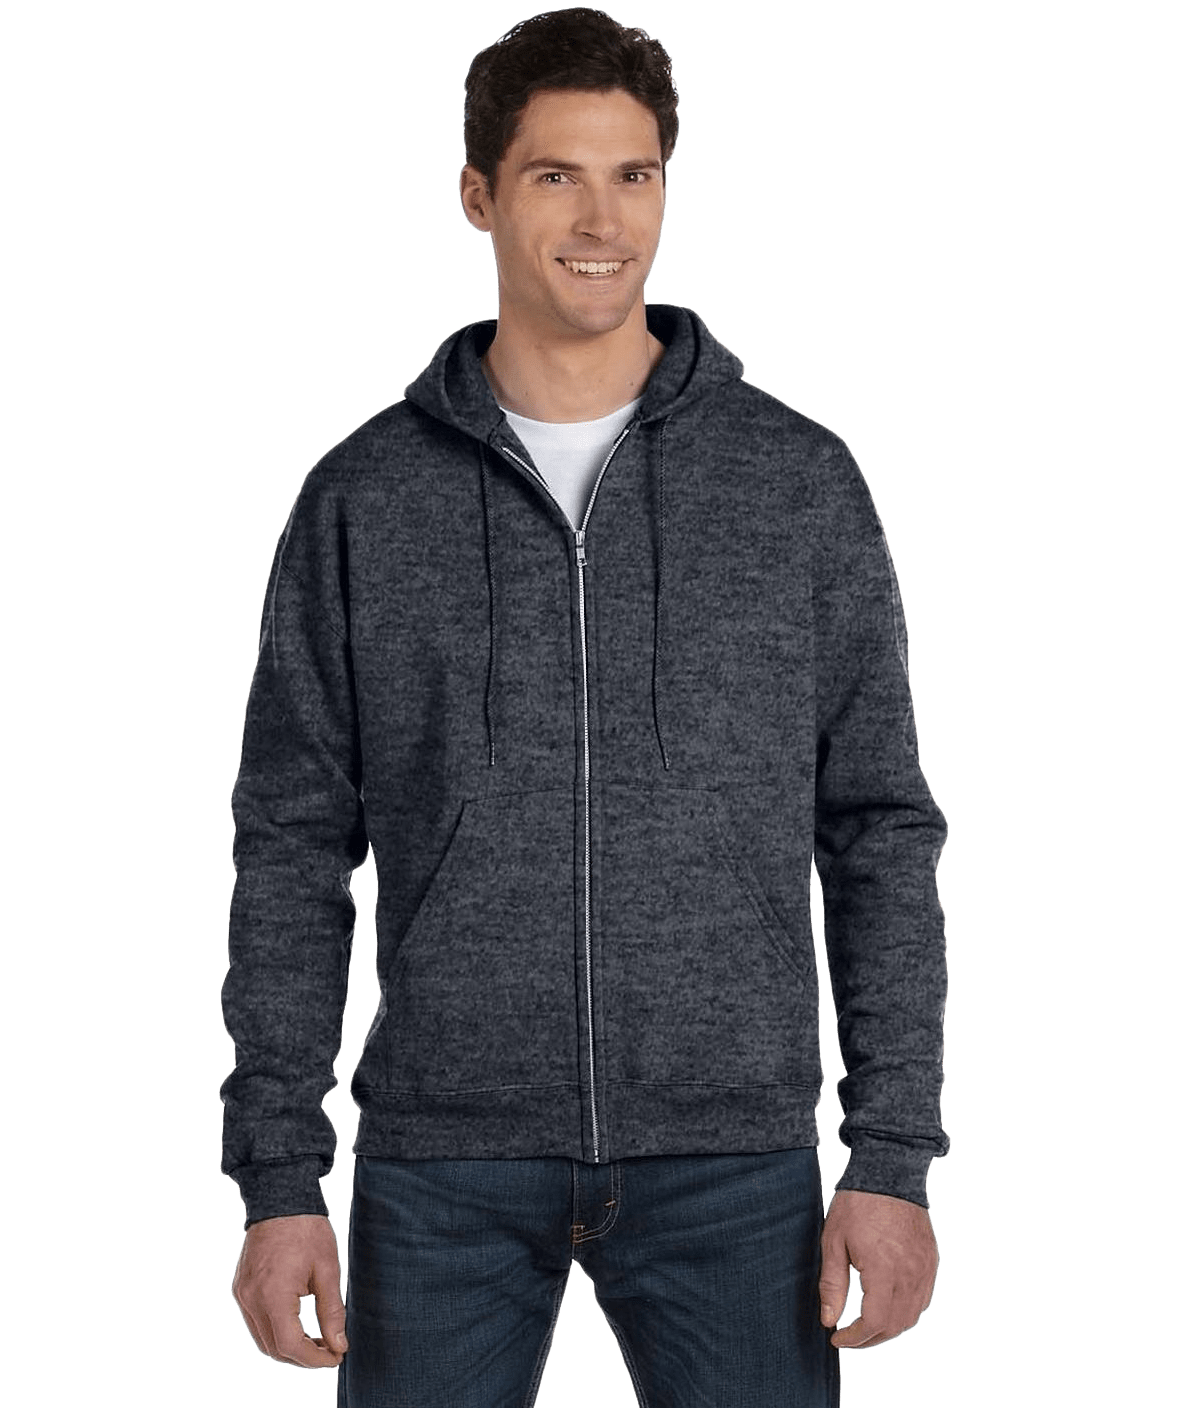 Champion S800 50/50 EcoSmart Full-Zip Hood